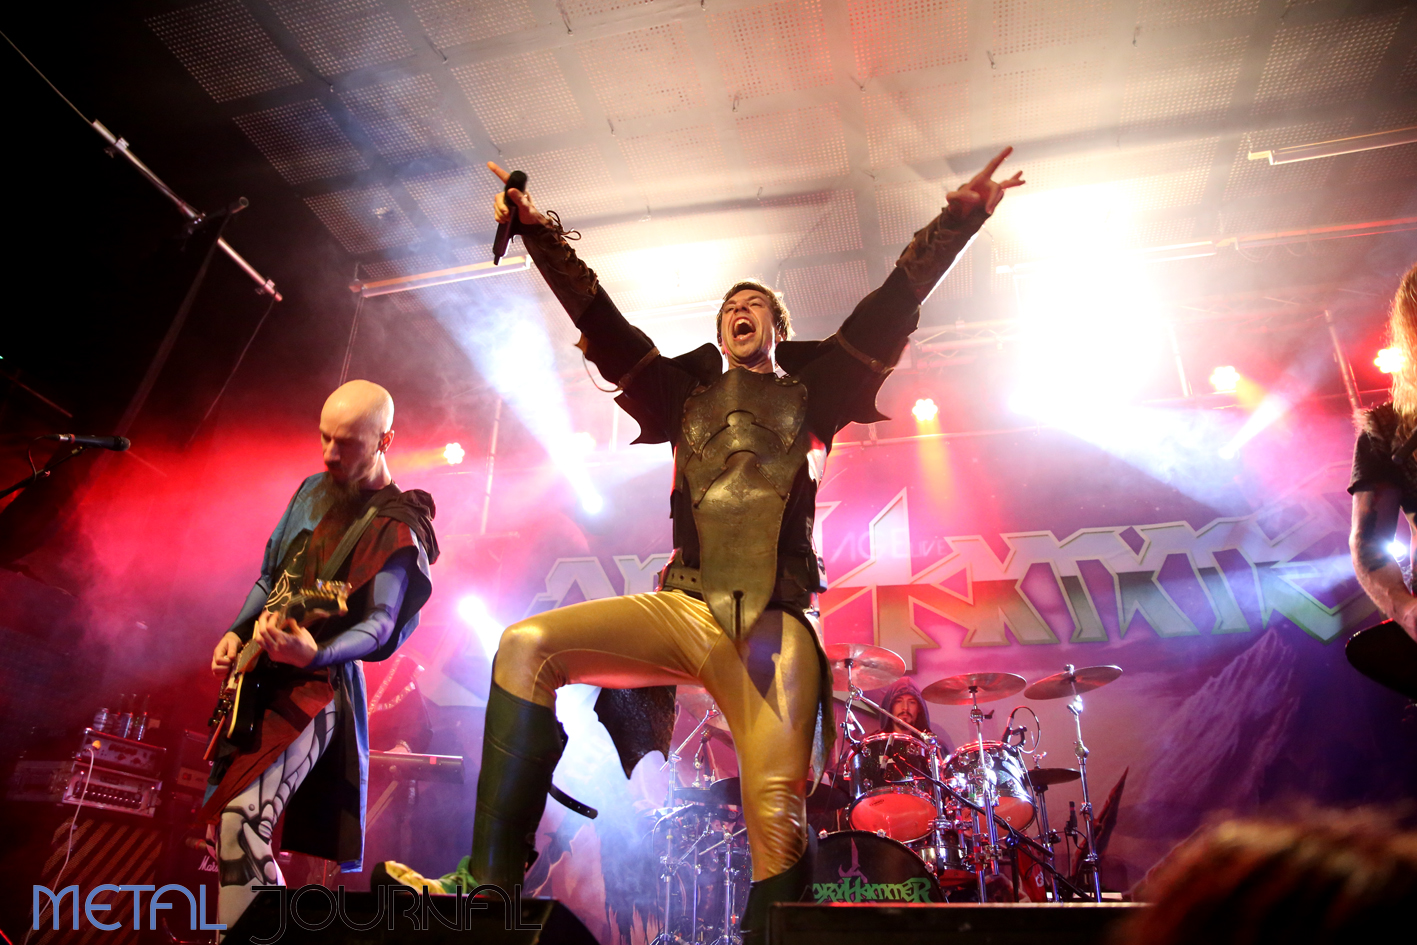 gloryhammer - metal journal 2018 pic 10